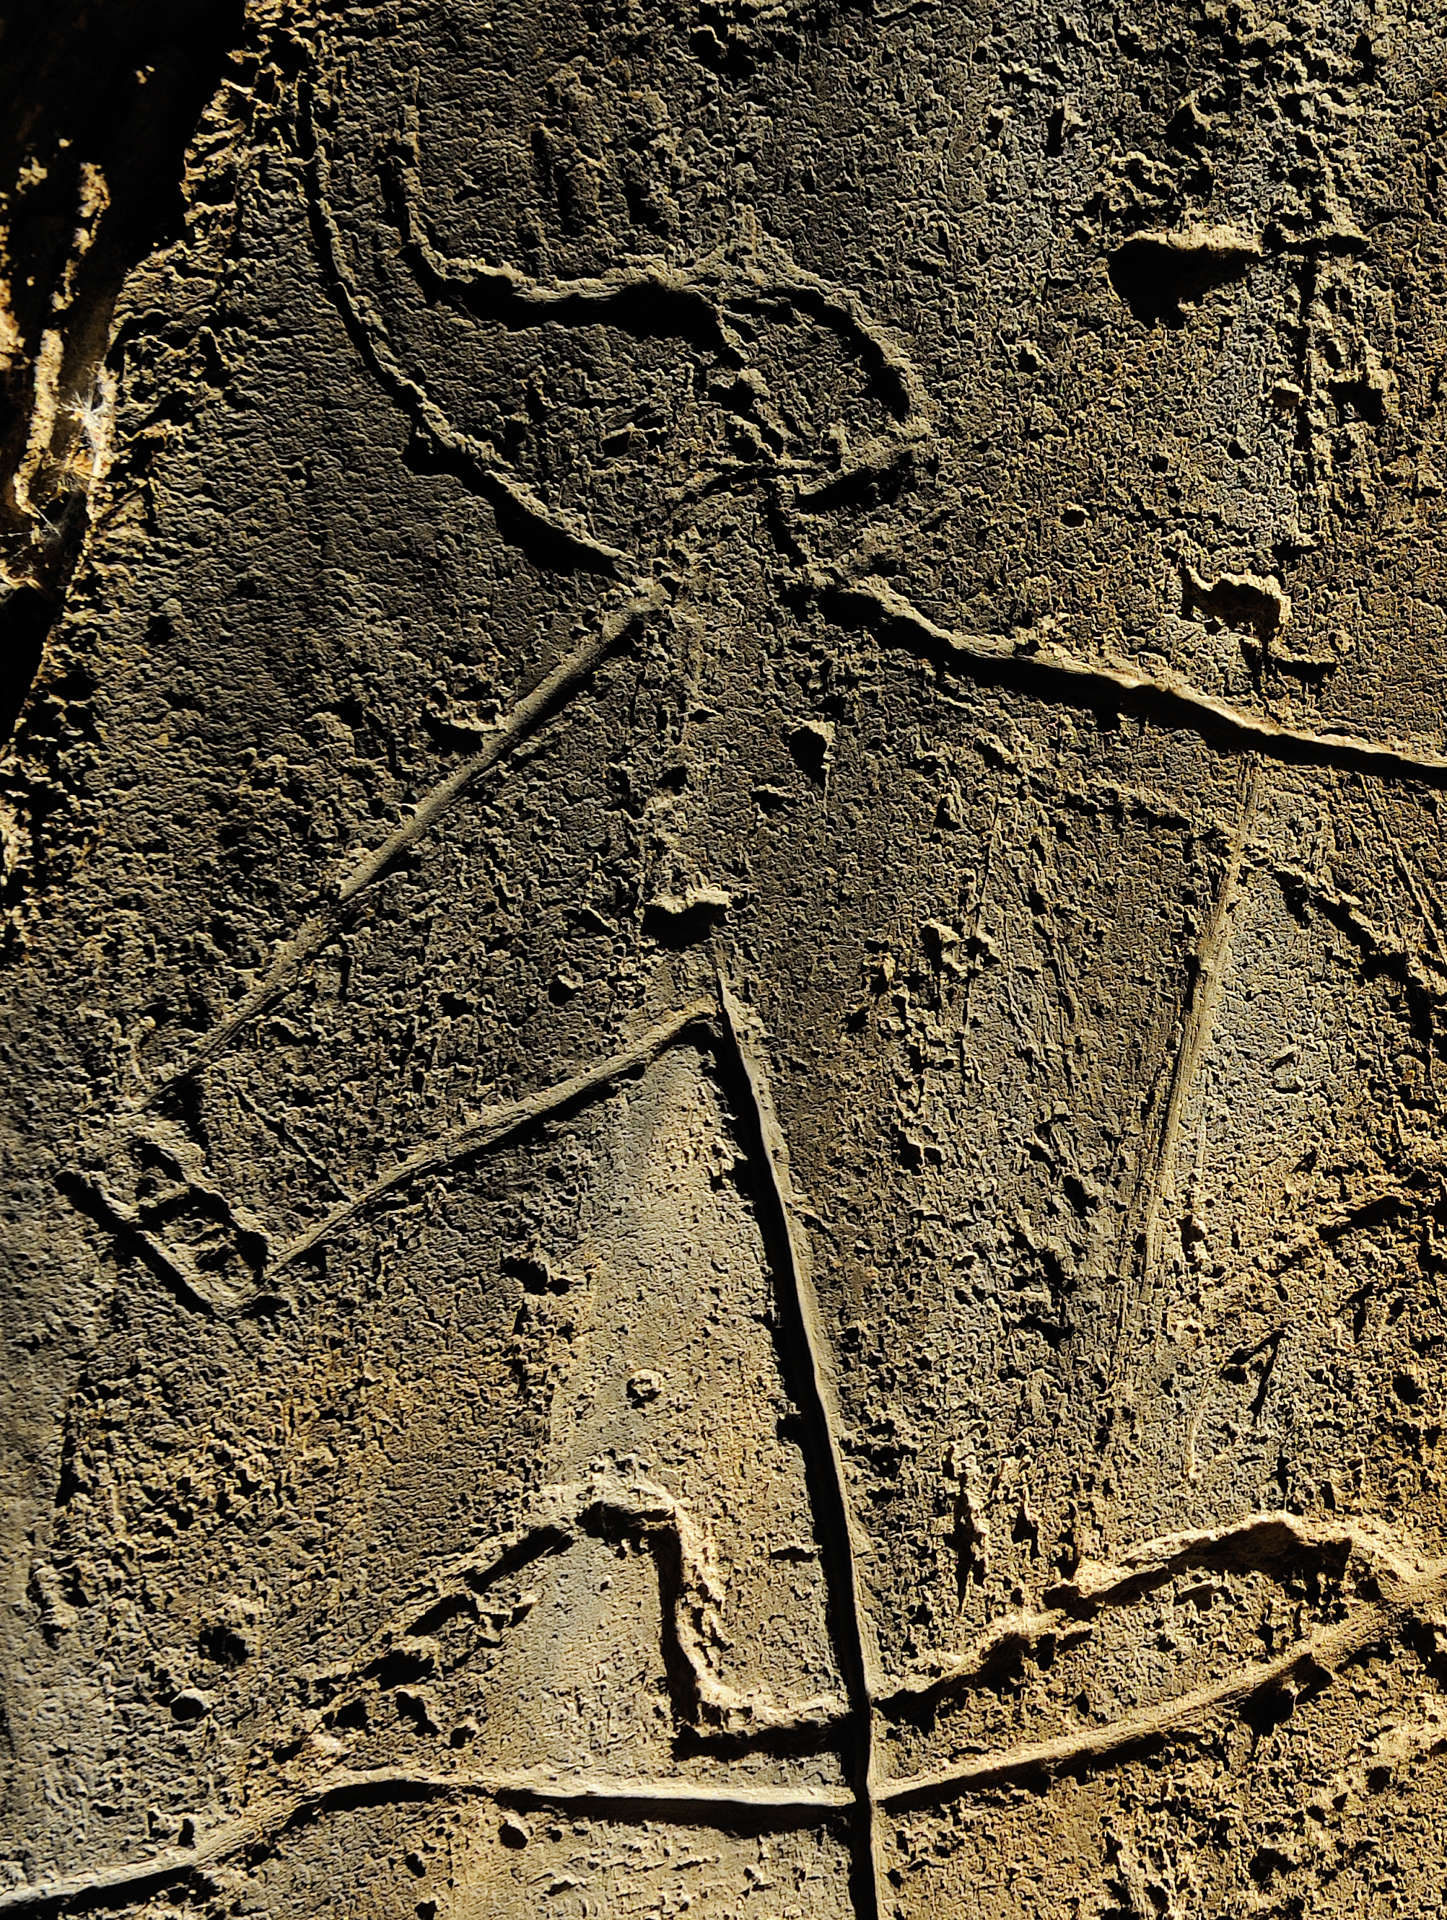 1cf5528a3a1 Rock engravings in the Coa valley archeological reserve, Portugal